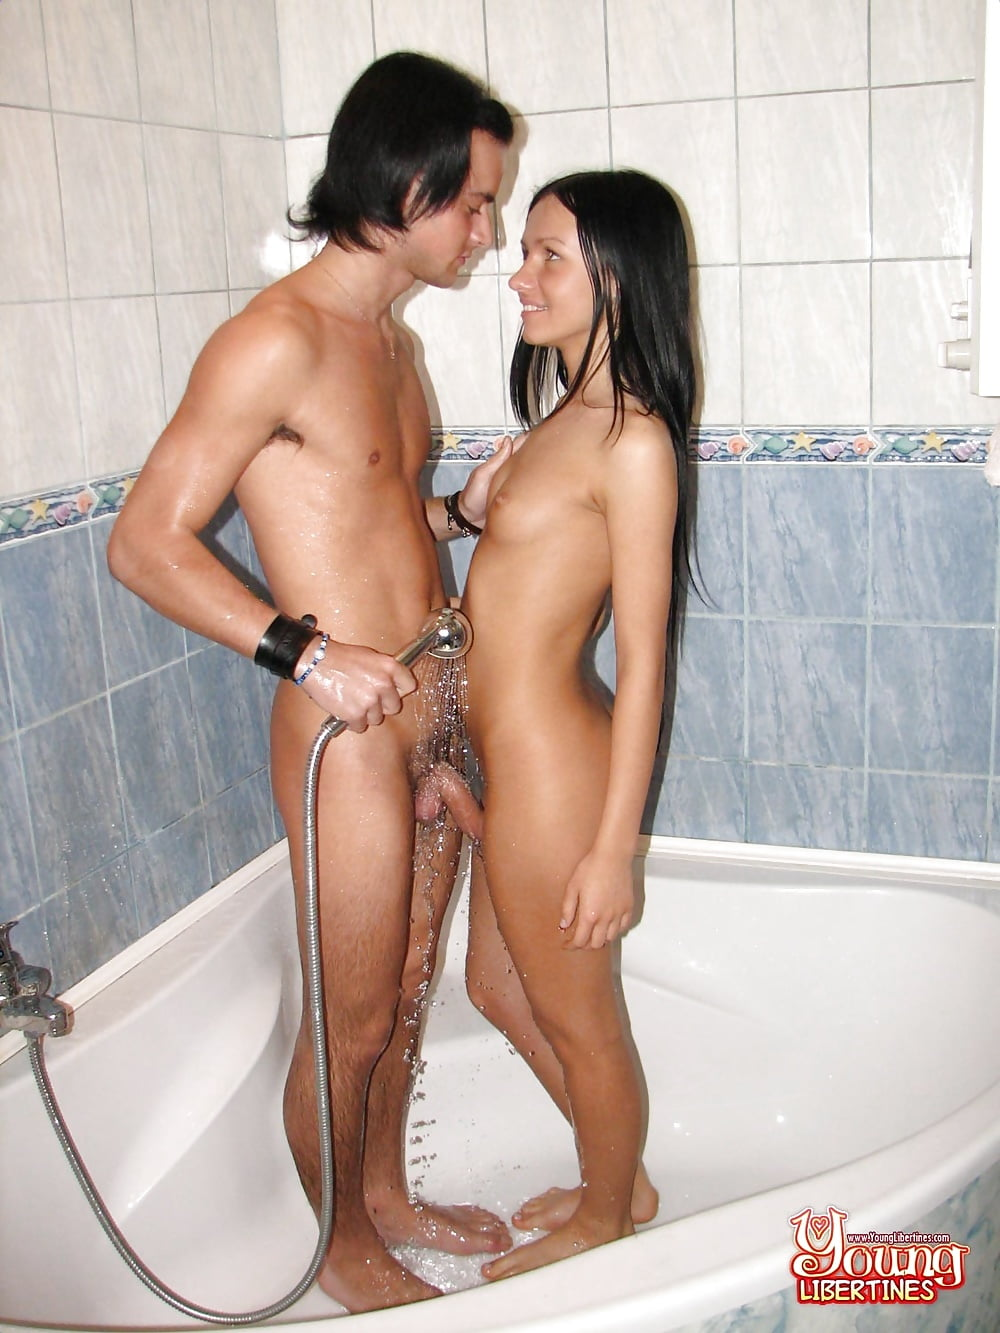 Young girl sex in the shower bondage videos crazy